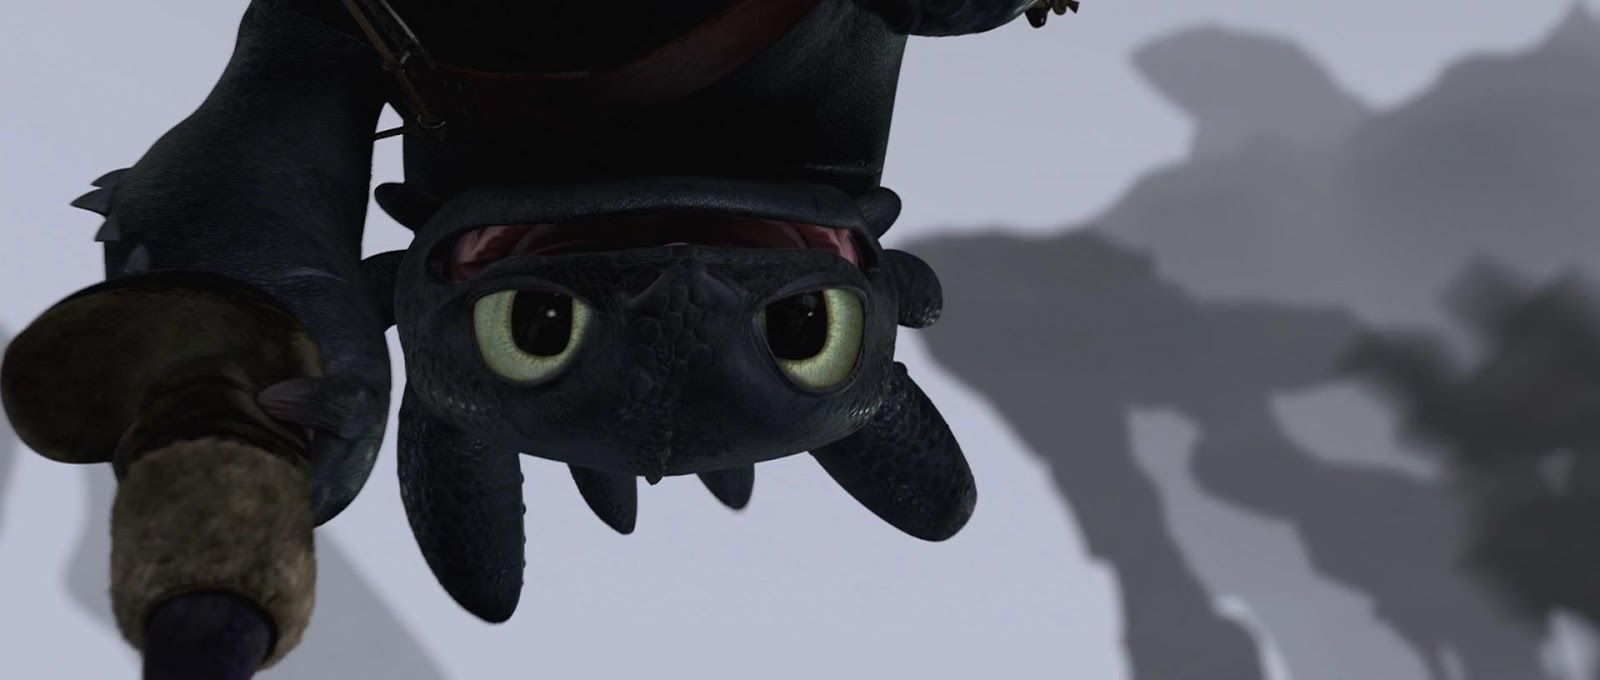 httyd toothless upside down wallpaper - photo #1